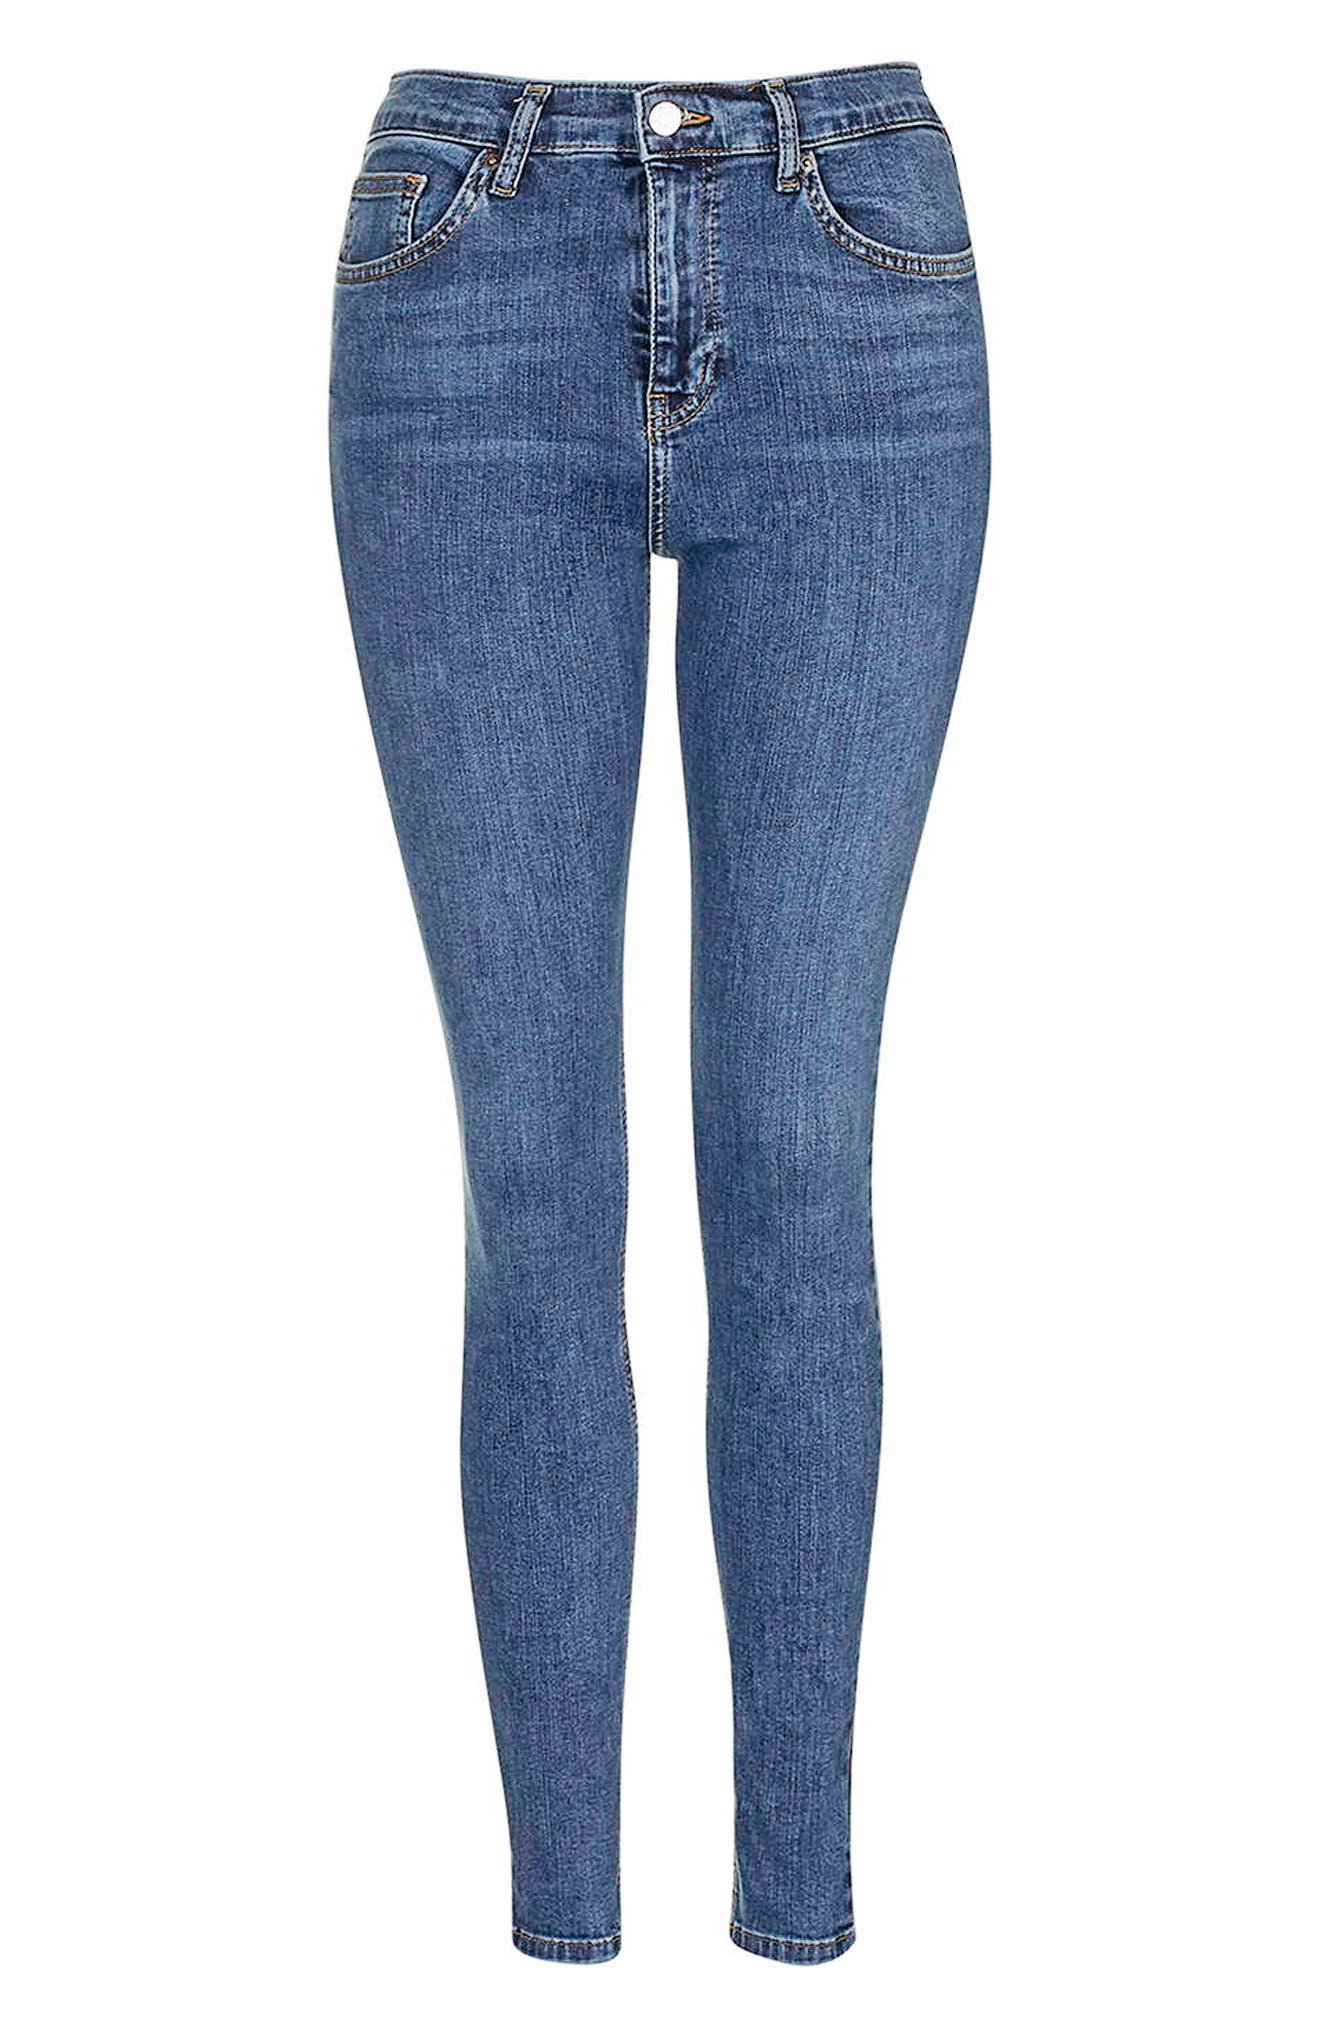 TOPSHOP, 'Jamie' High Rise Ankle Skinny Jeans, Alternate thumbnail 2, color, MID DENIM